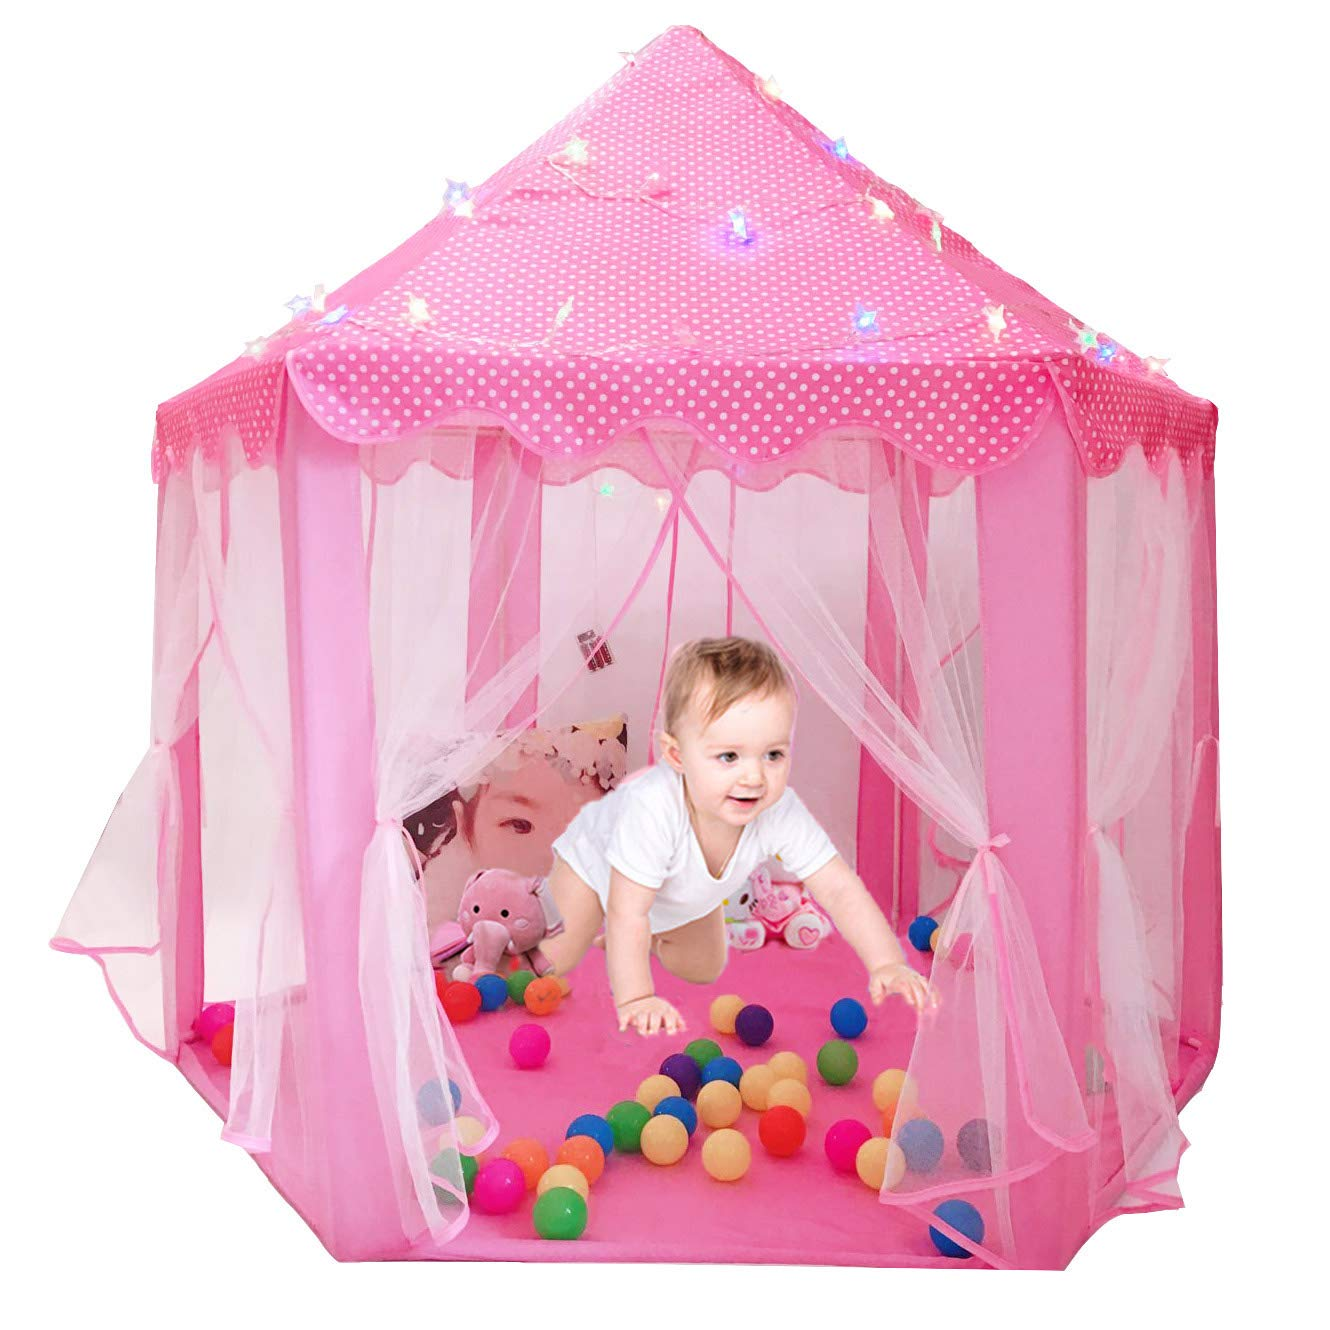 Ltd. Perfect Outdoor Child Toys with Star Lights Shenzhen Hengruilong Trading Co Kids Indoor Princess Castle Play Tents